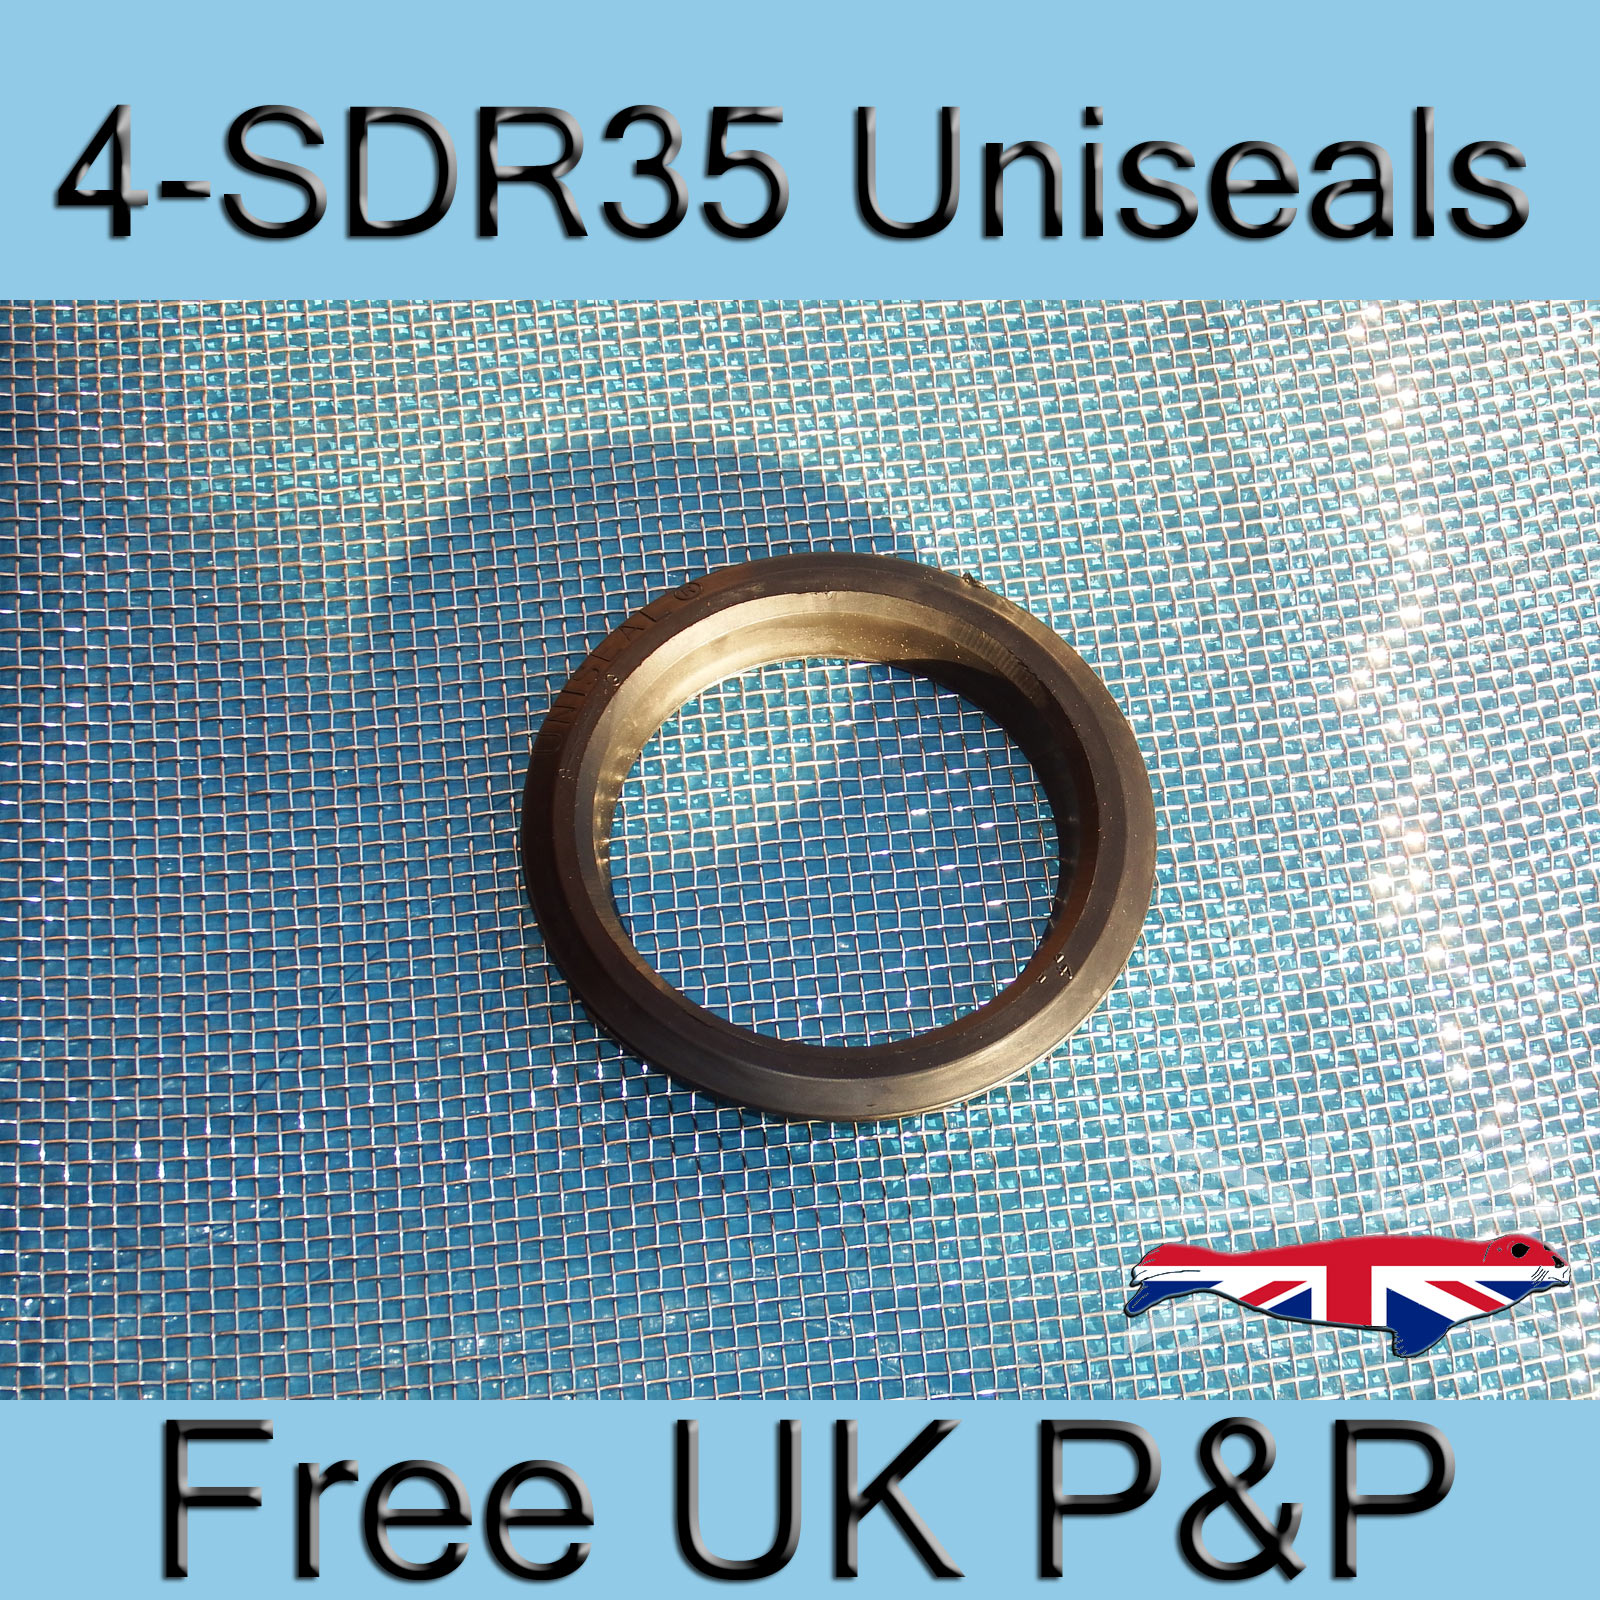 Magnify 4 inch-SDR35 Uniseal photo